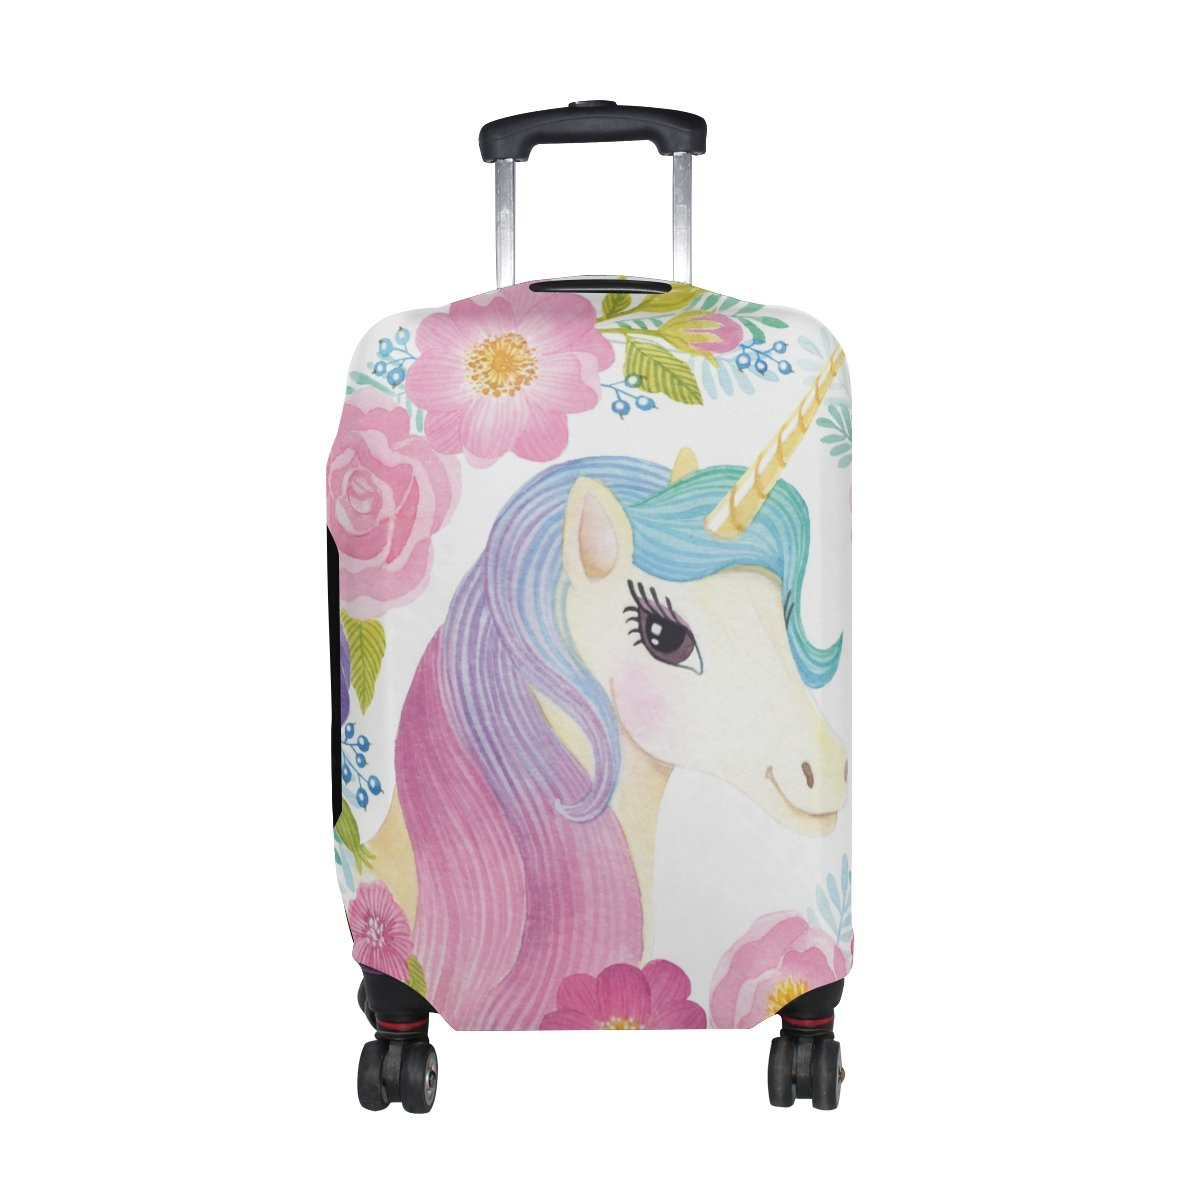 Cooper girl Unicorn Flowers Rose Travel Luggage Cover Suitcase Protector Fits 23-26 Inch